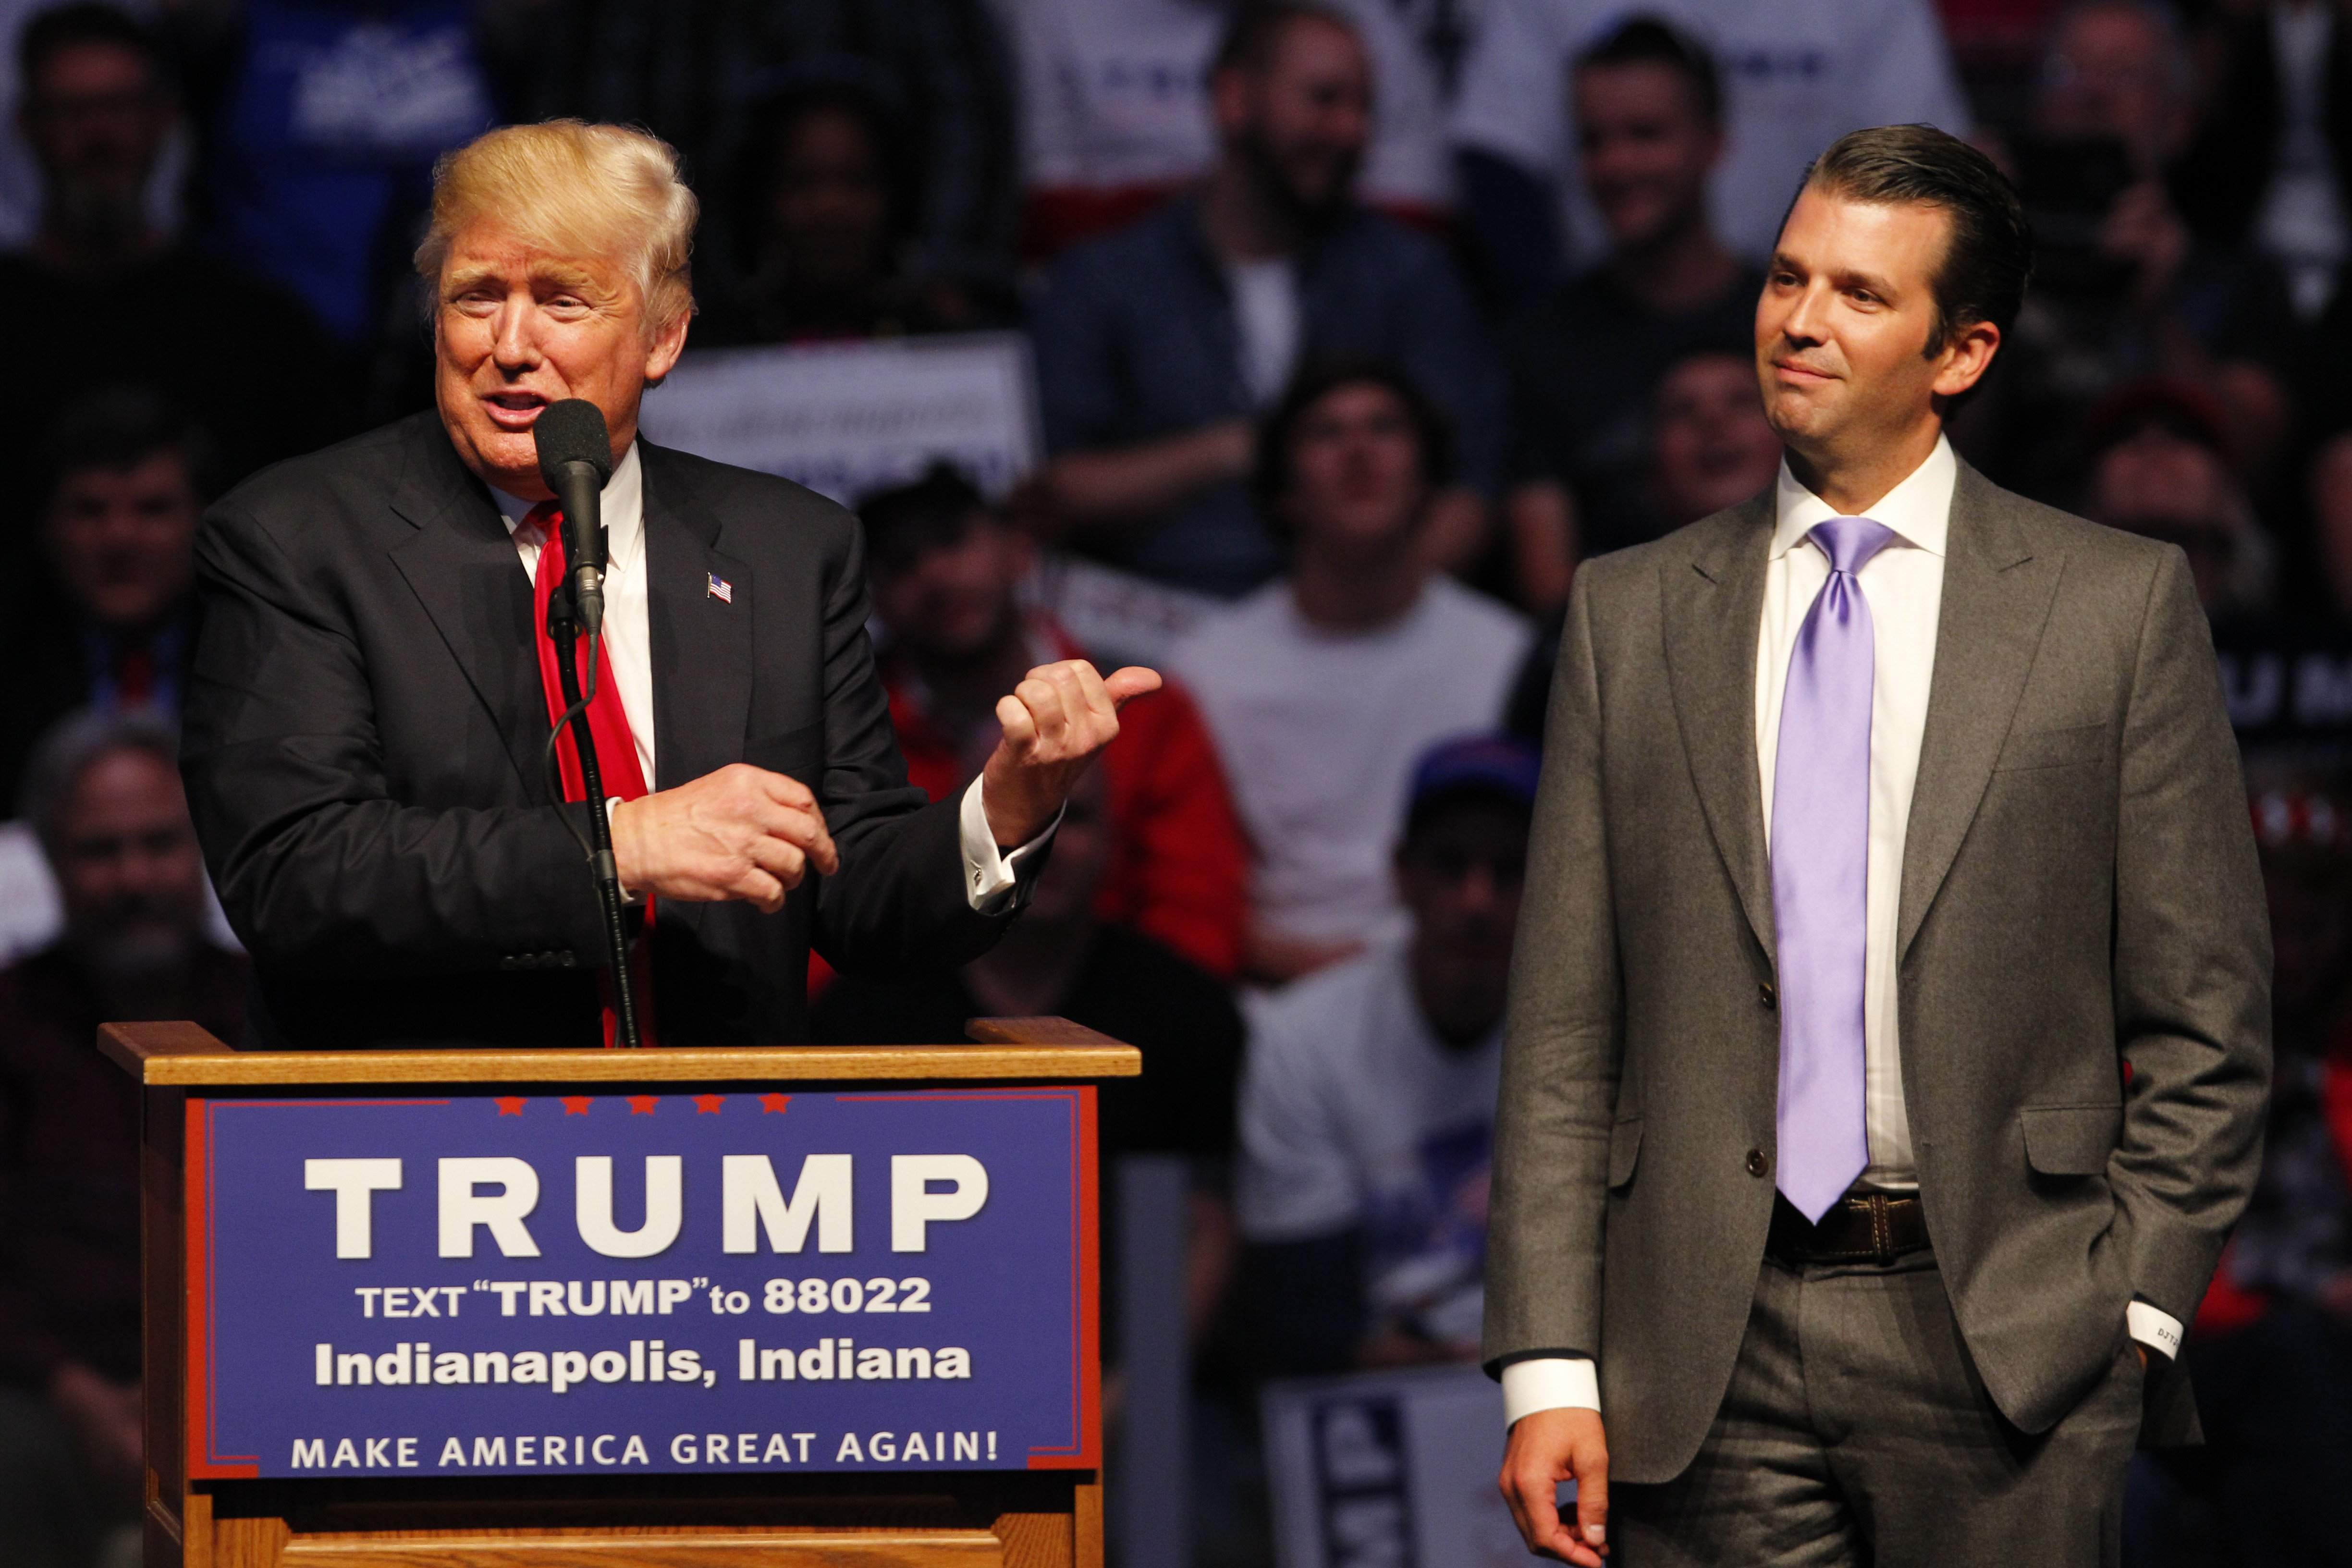 President Trump and his son, Donald Trump Jr, in Indianapolis, Indiana. Image credit: Getty/GlobalImagesUkraine